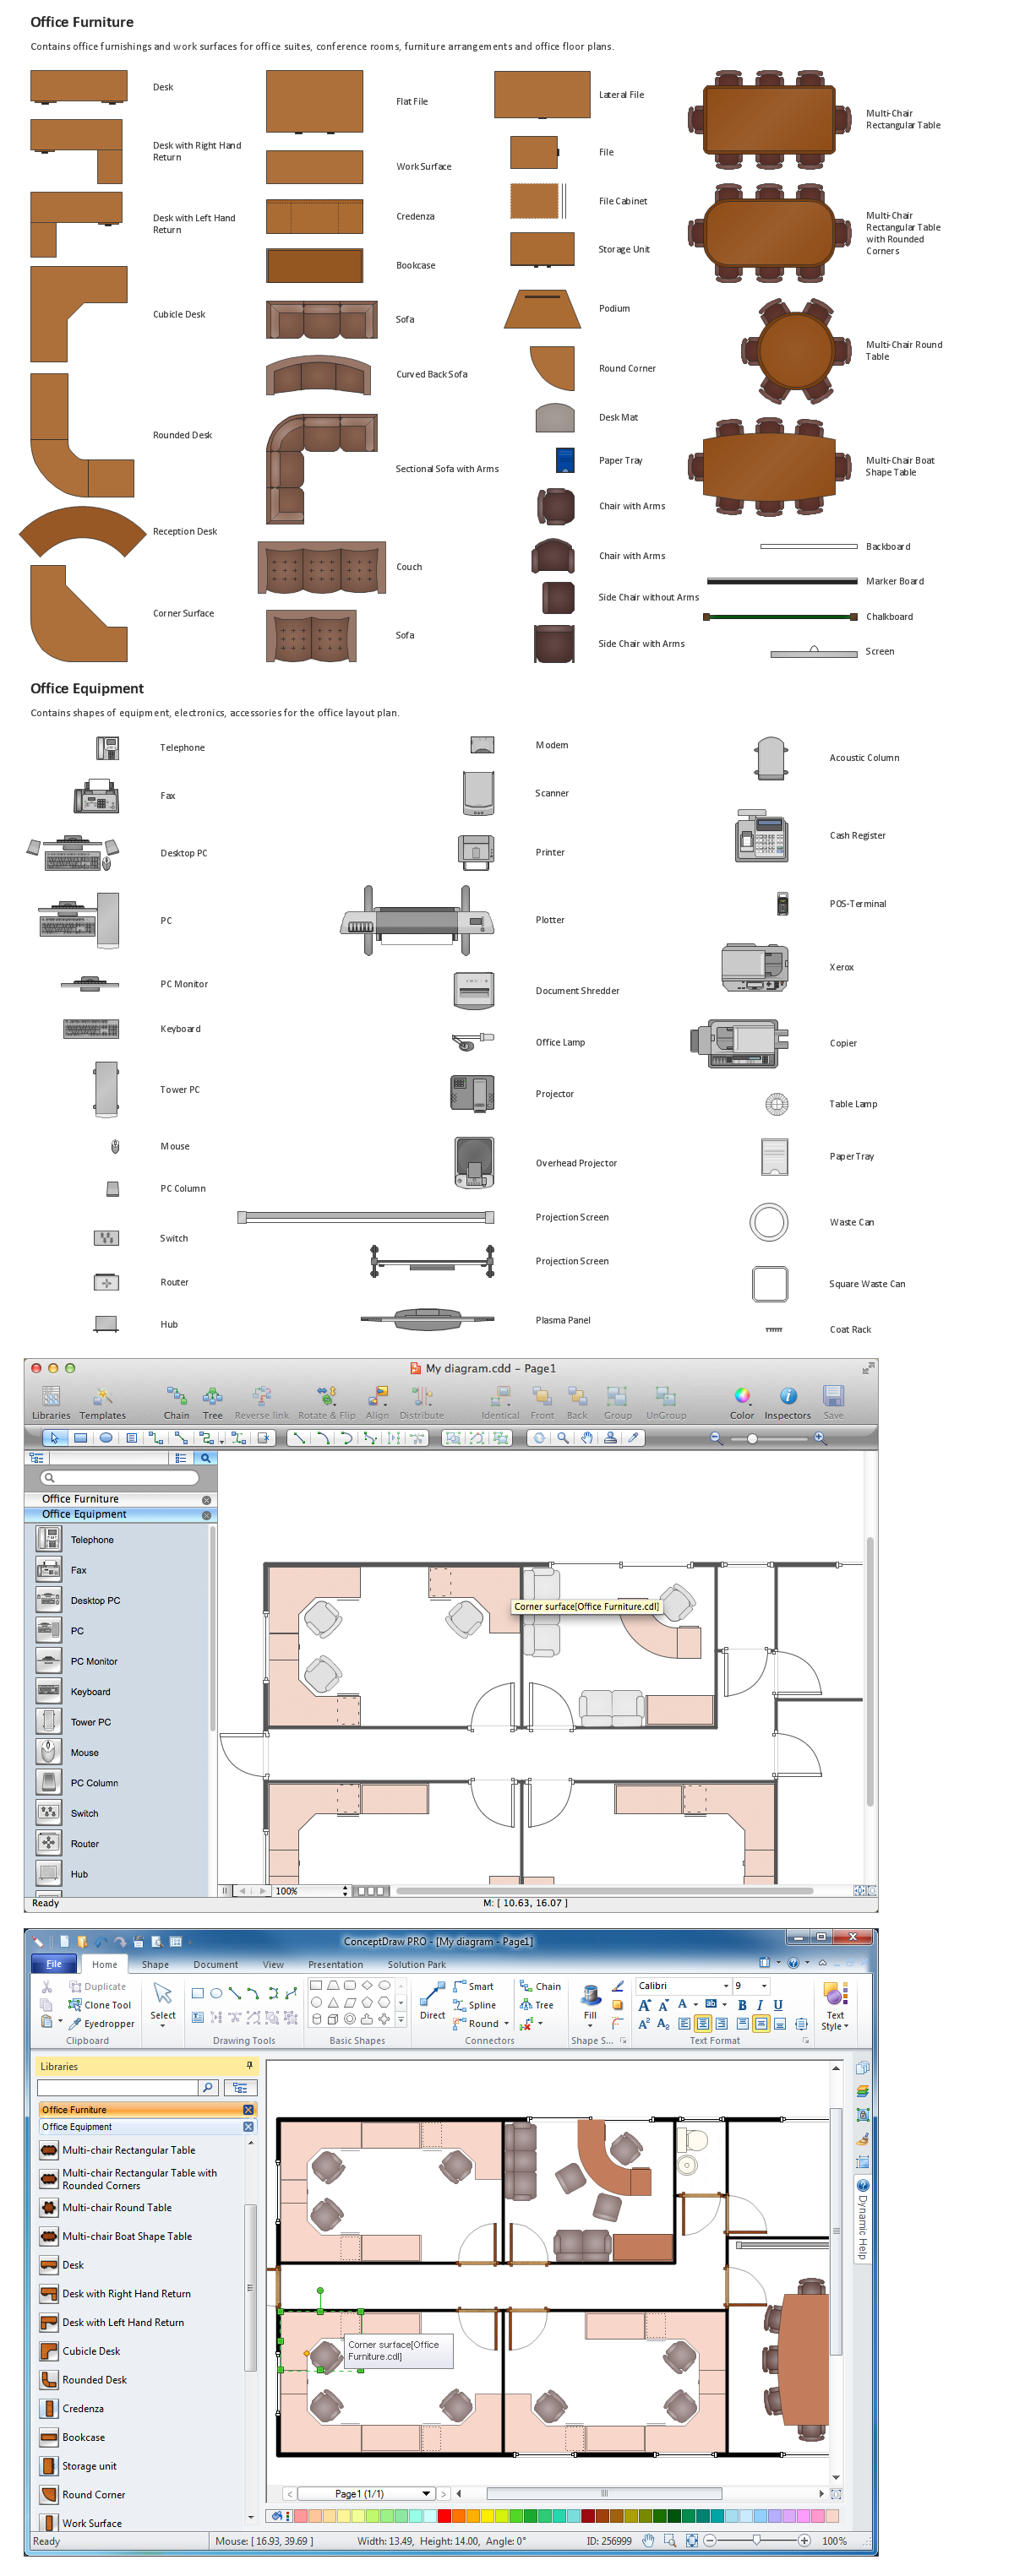 Building Drawing Tools Interior Design Elements Office Layout Plan